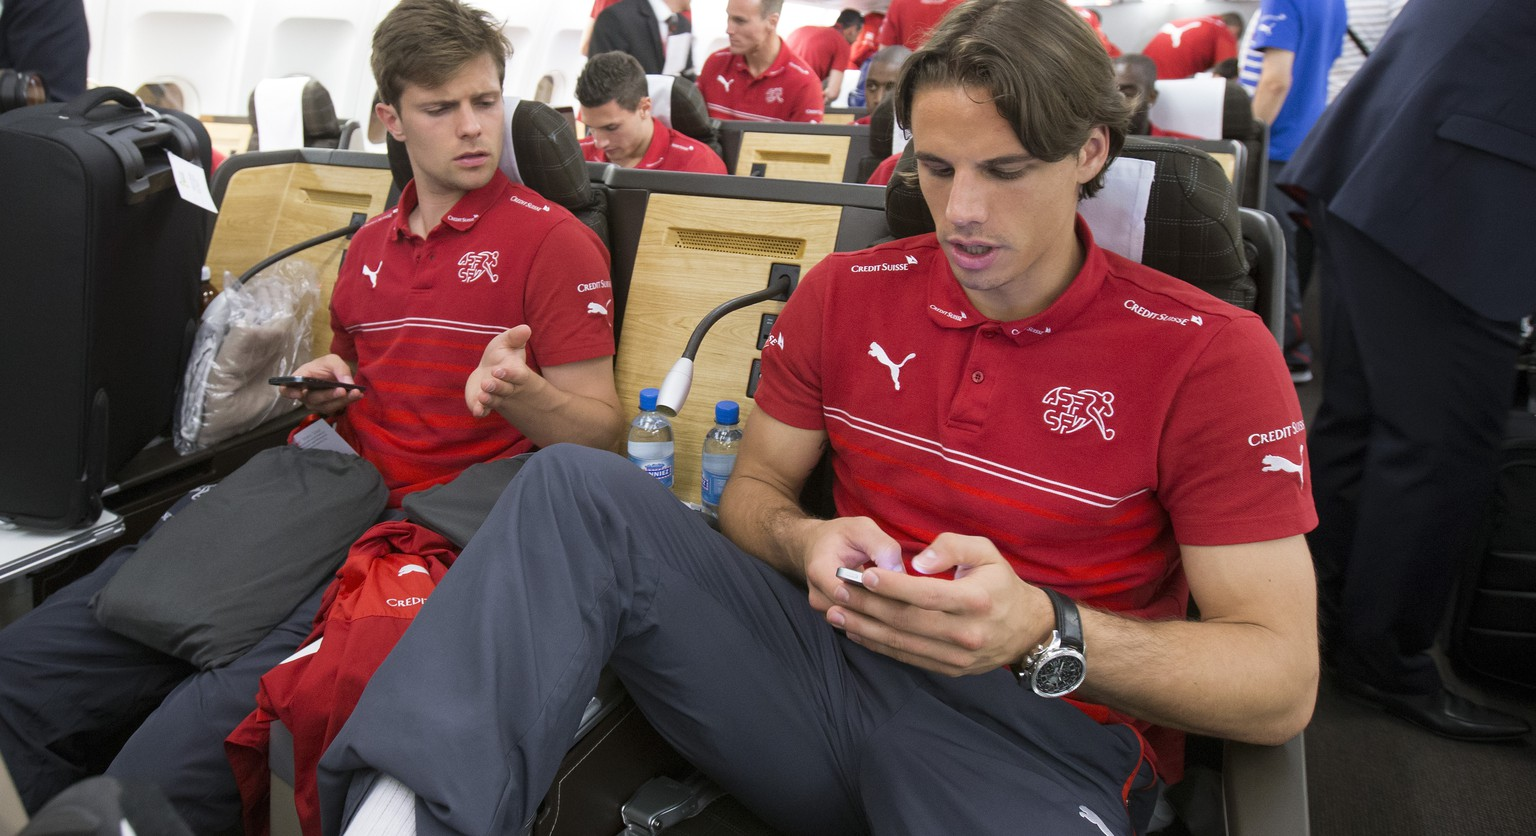 Switzerland's Yann Sommer, right, and Valentin Stocker, left, operate their mobile phones prior to the start of the flight to Sao Paulo at the airport in Zuerich-Kloten, Switzerland, Friday, June 6, 2014. (KEYSTONE/Peter Klaunzer)